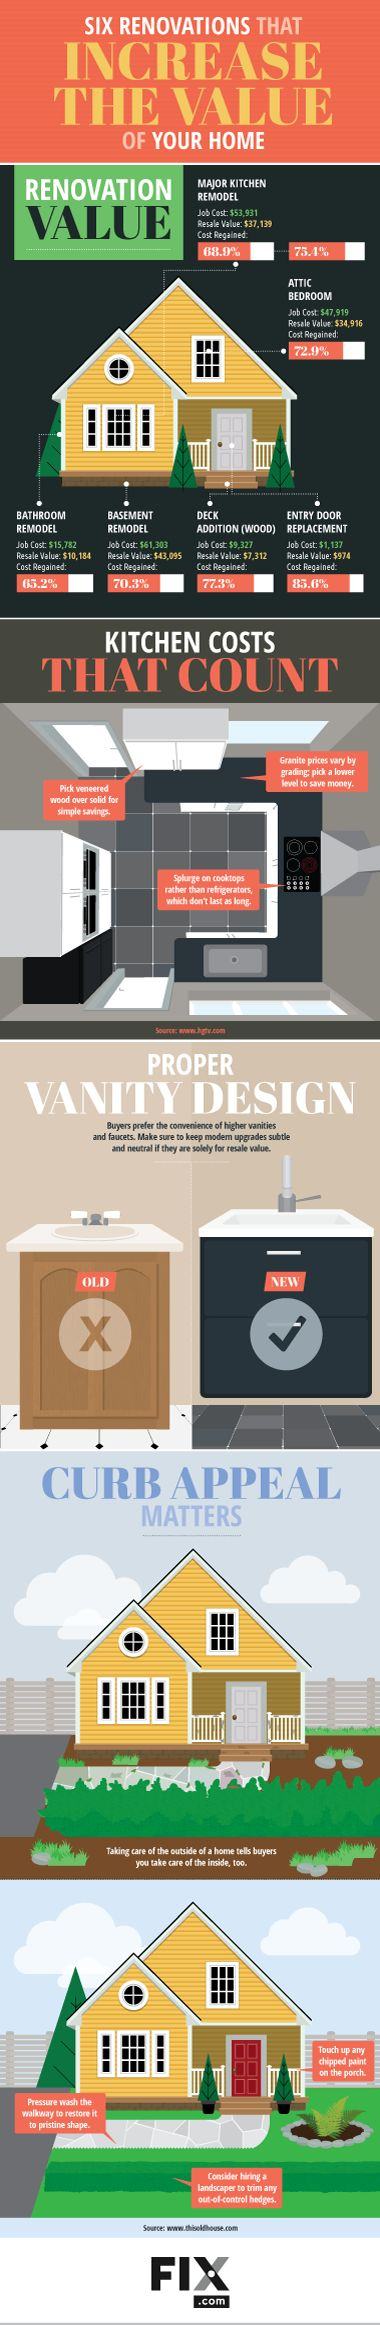 Six renovations that increase the value of your home.